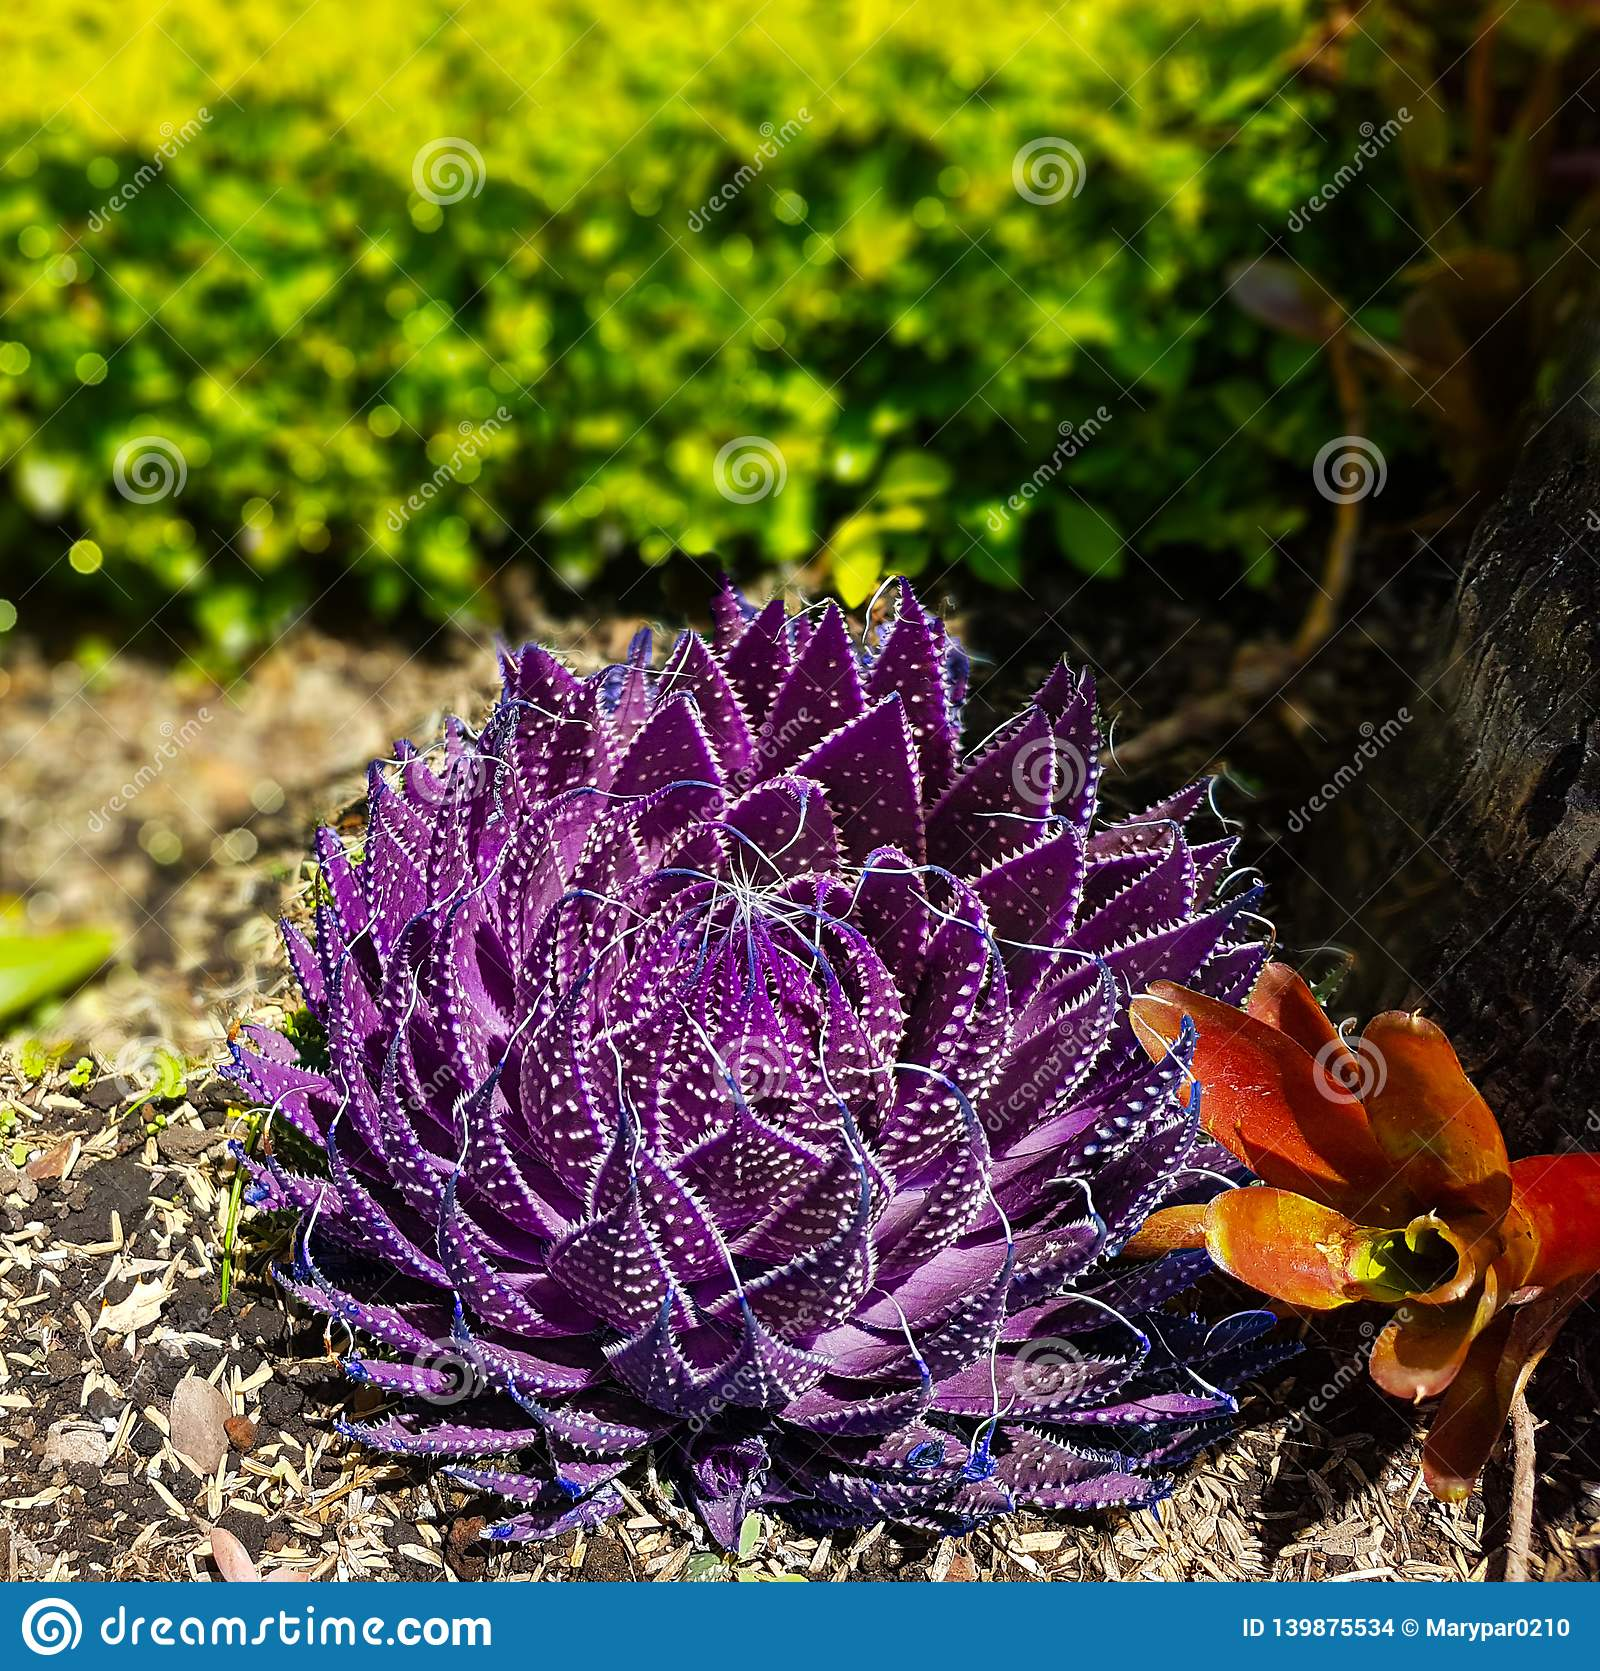 Purple Succulent Plant In The Middle Of The Garden Stock Photo Image Of Middle Leaves 139875534